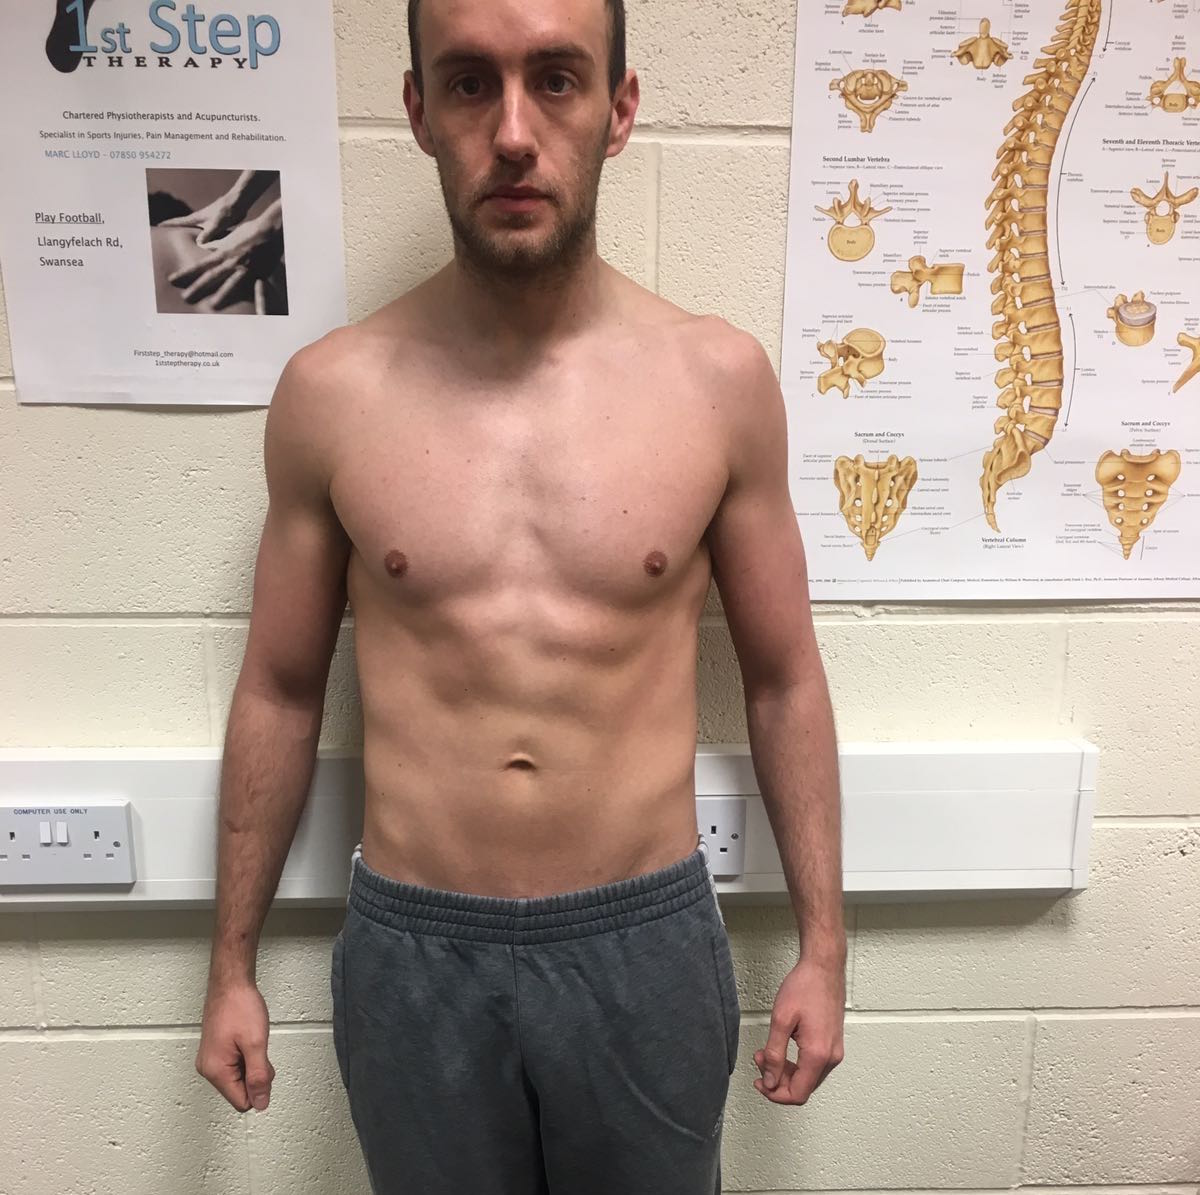 Personal training results after 6 week program image